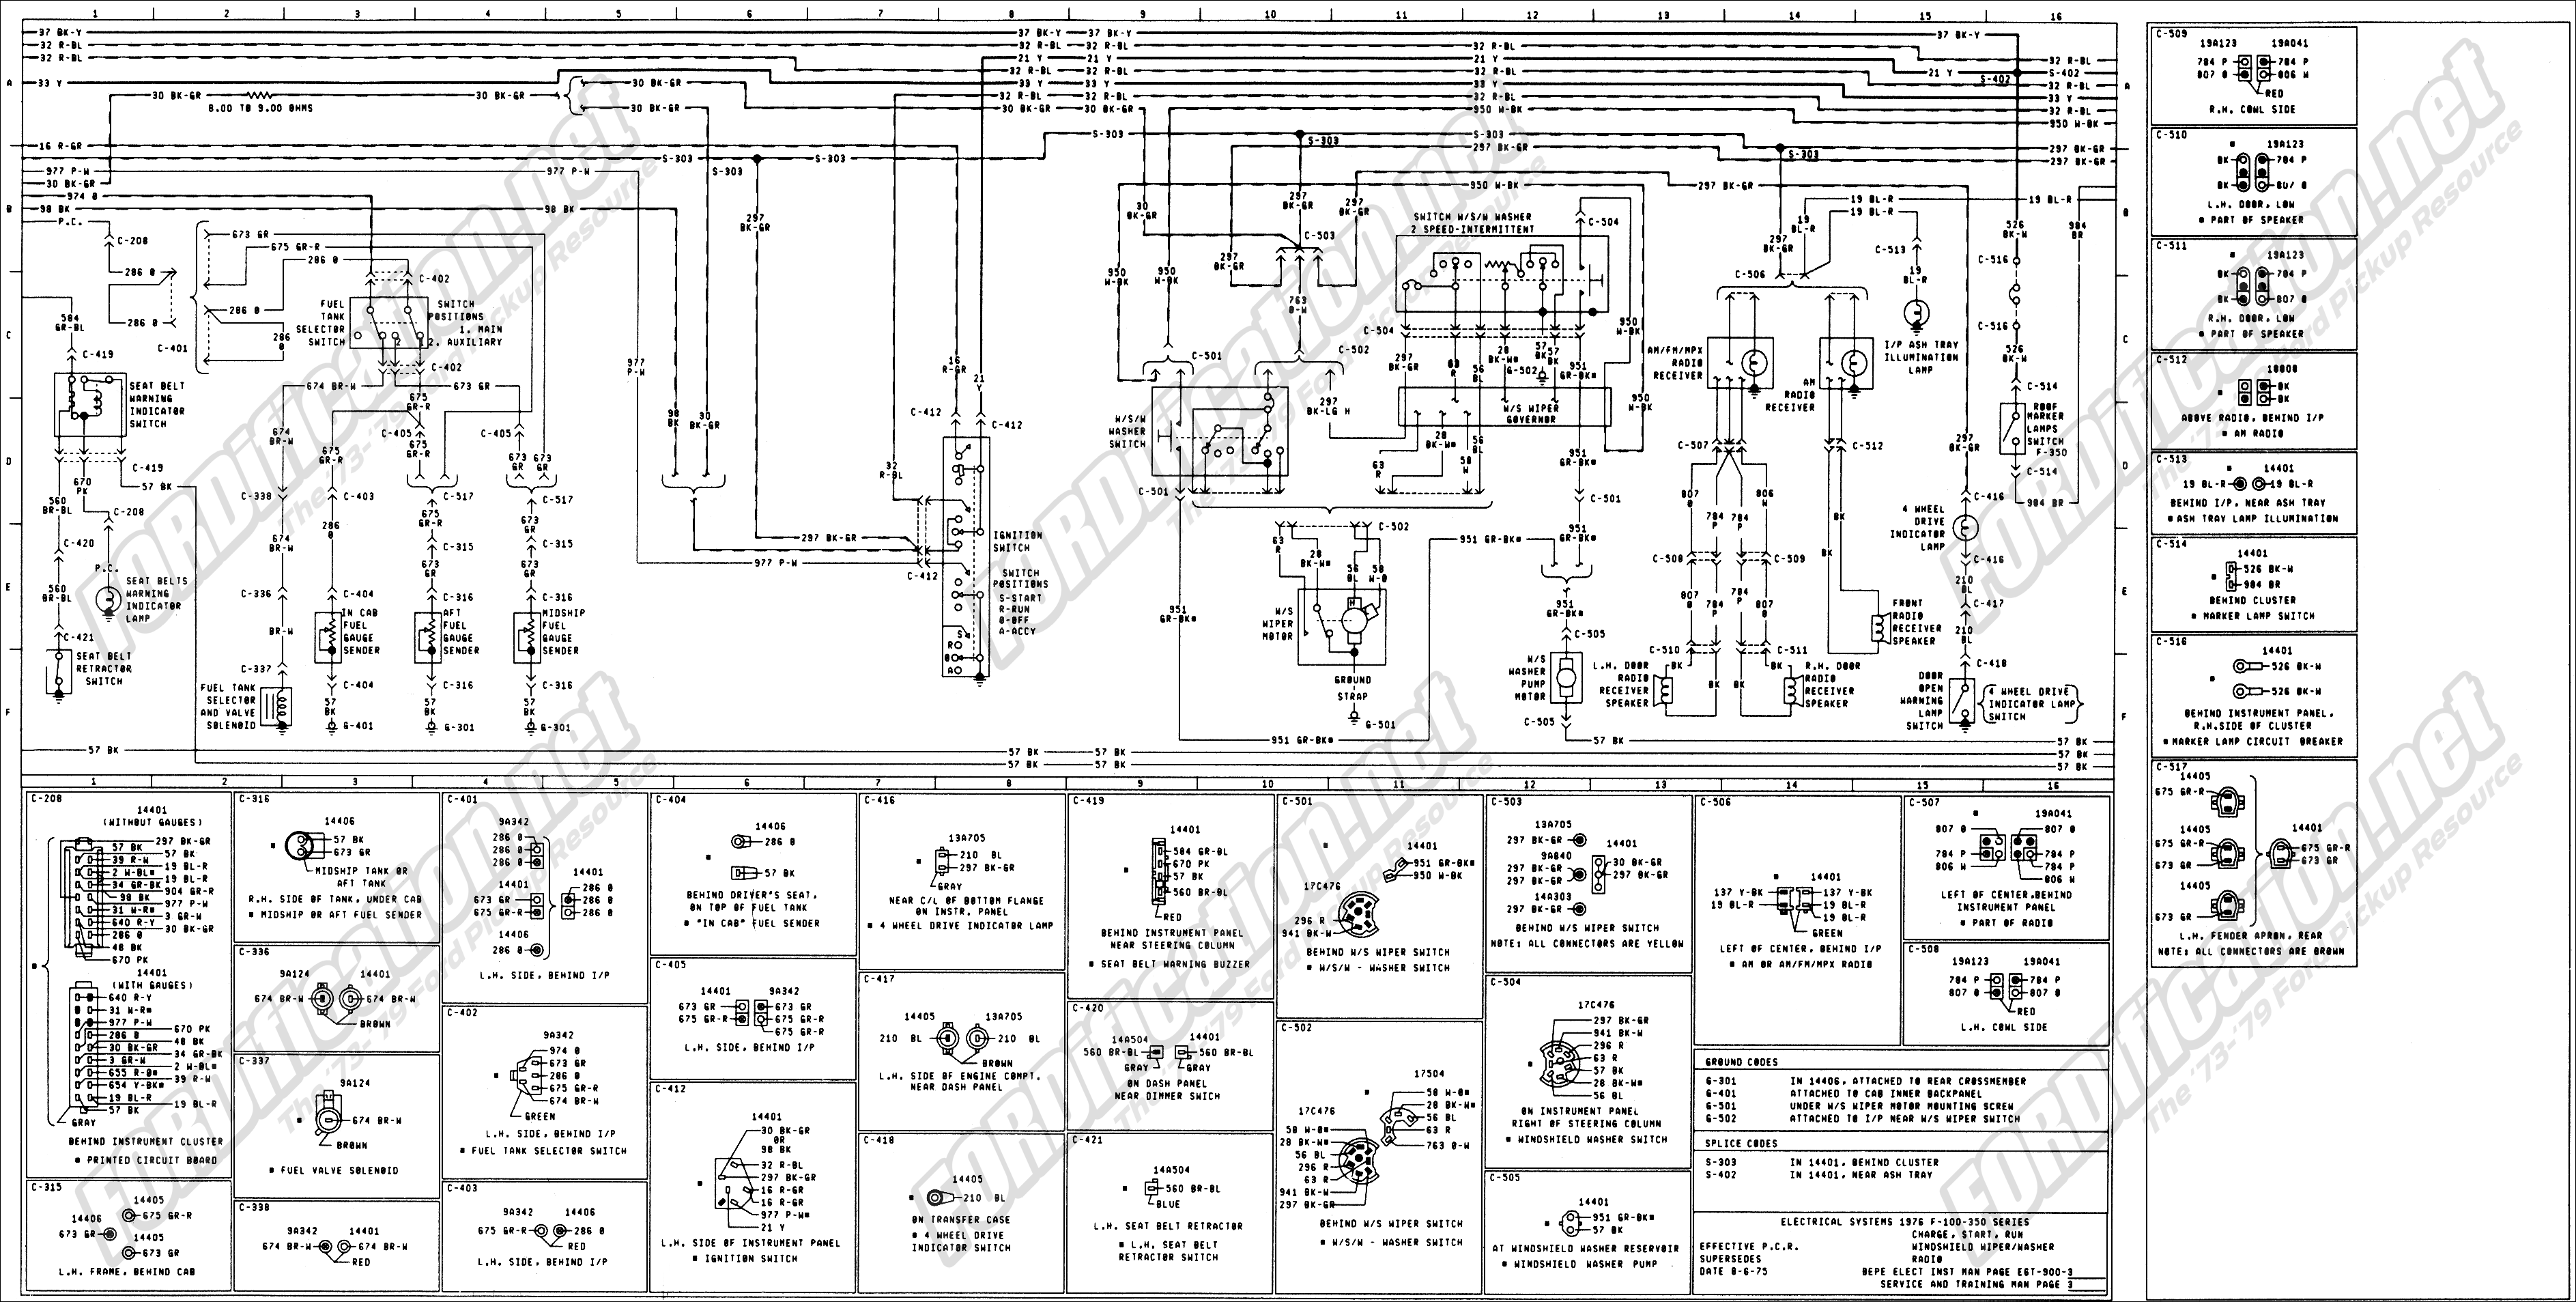 Ford F-250 Wiring Diagram